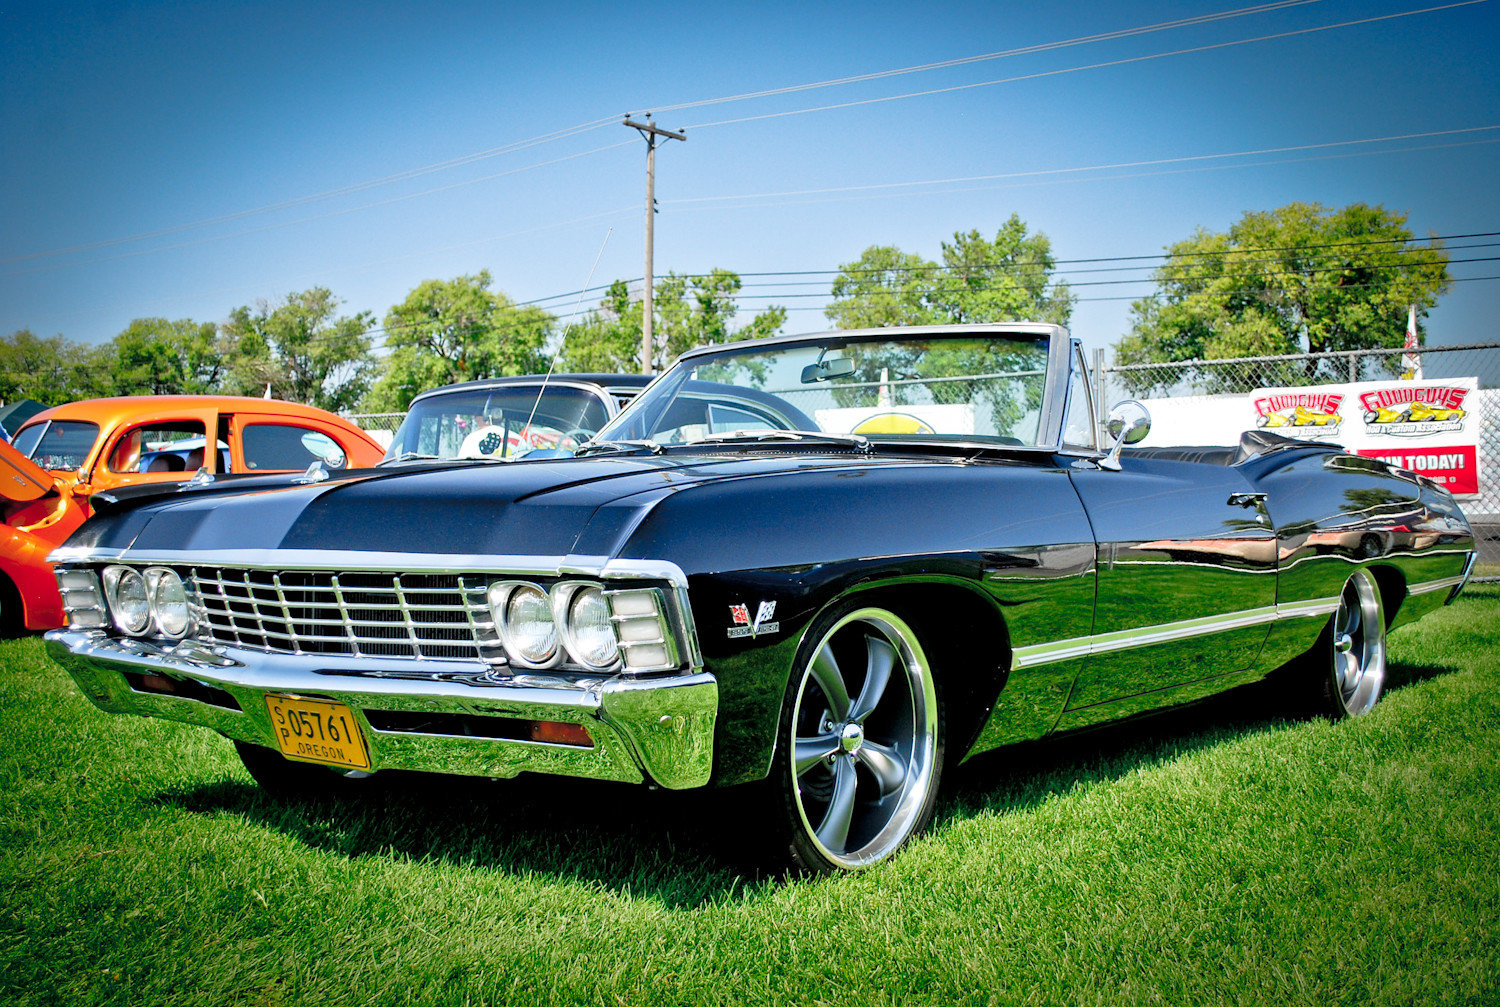 67 Impala Ss For Sale >> the nicest pro touring 67 Impala SS drop top you'll see...